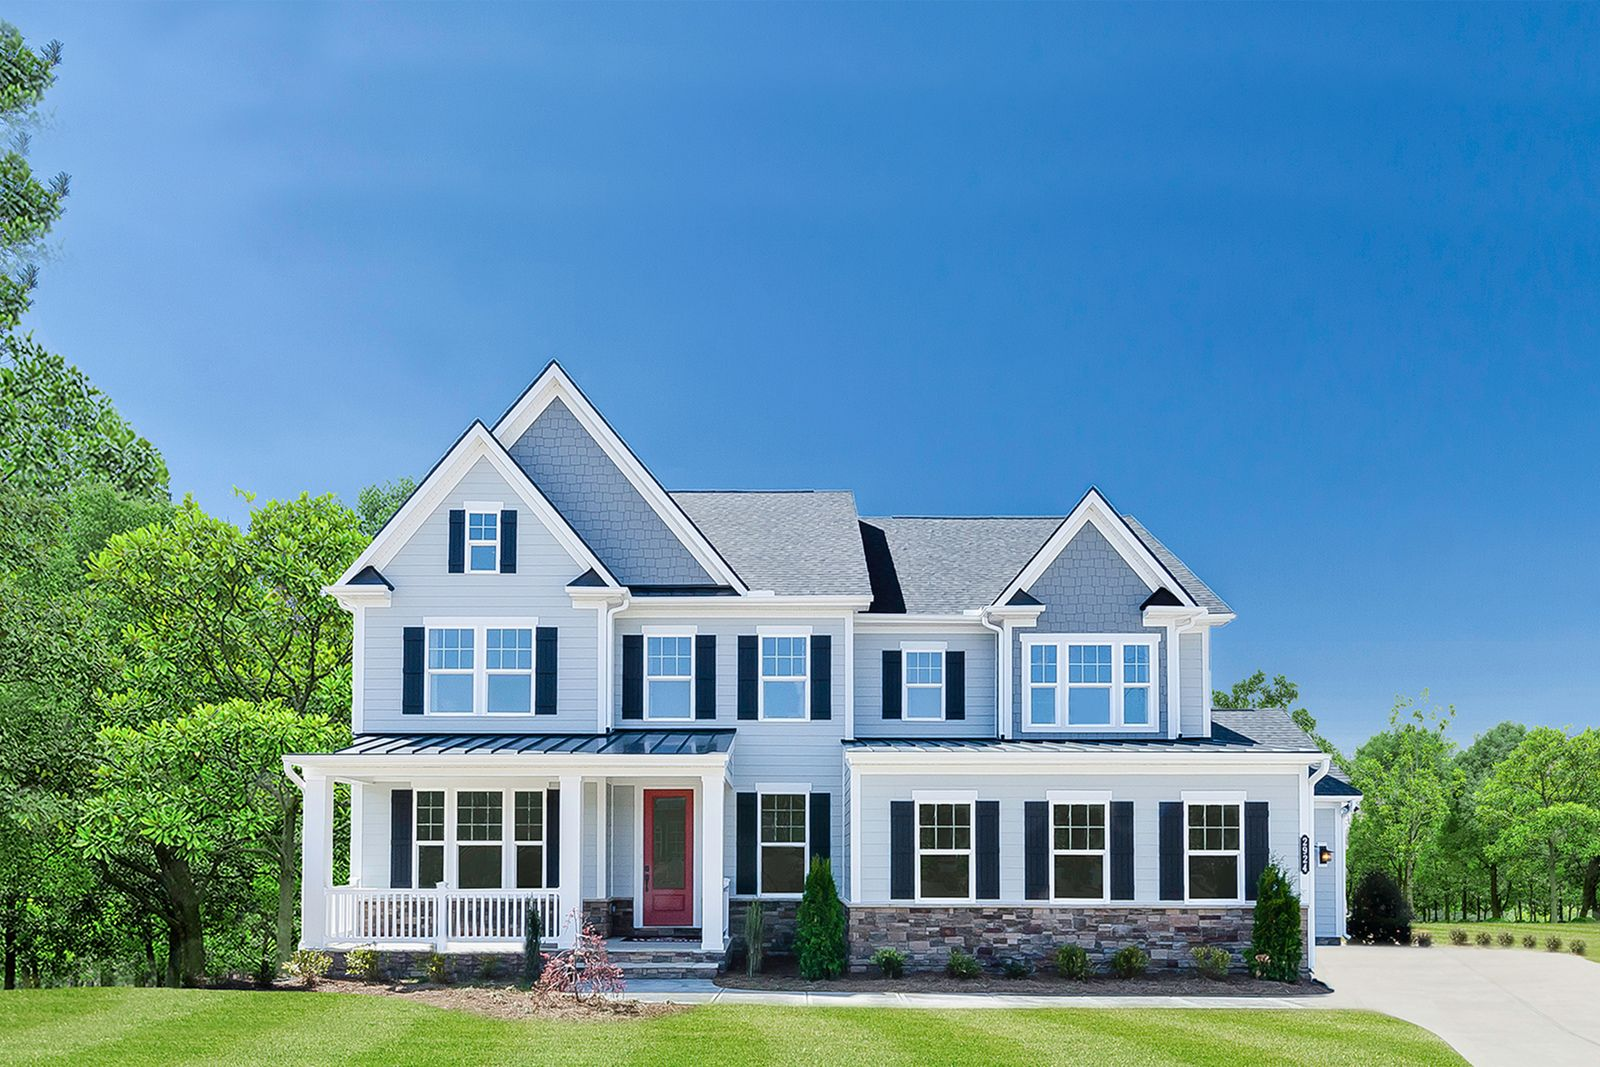 WELCOME TO GREYSTONE:The only new single homes with luxury features you want, in a neighborhood with sidewalks and 7 miles of trails, 3 minutes from West Chester Borough.Schedule your visit today.